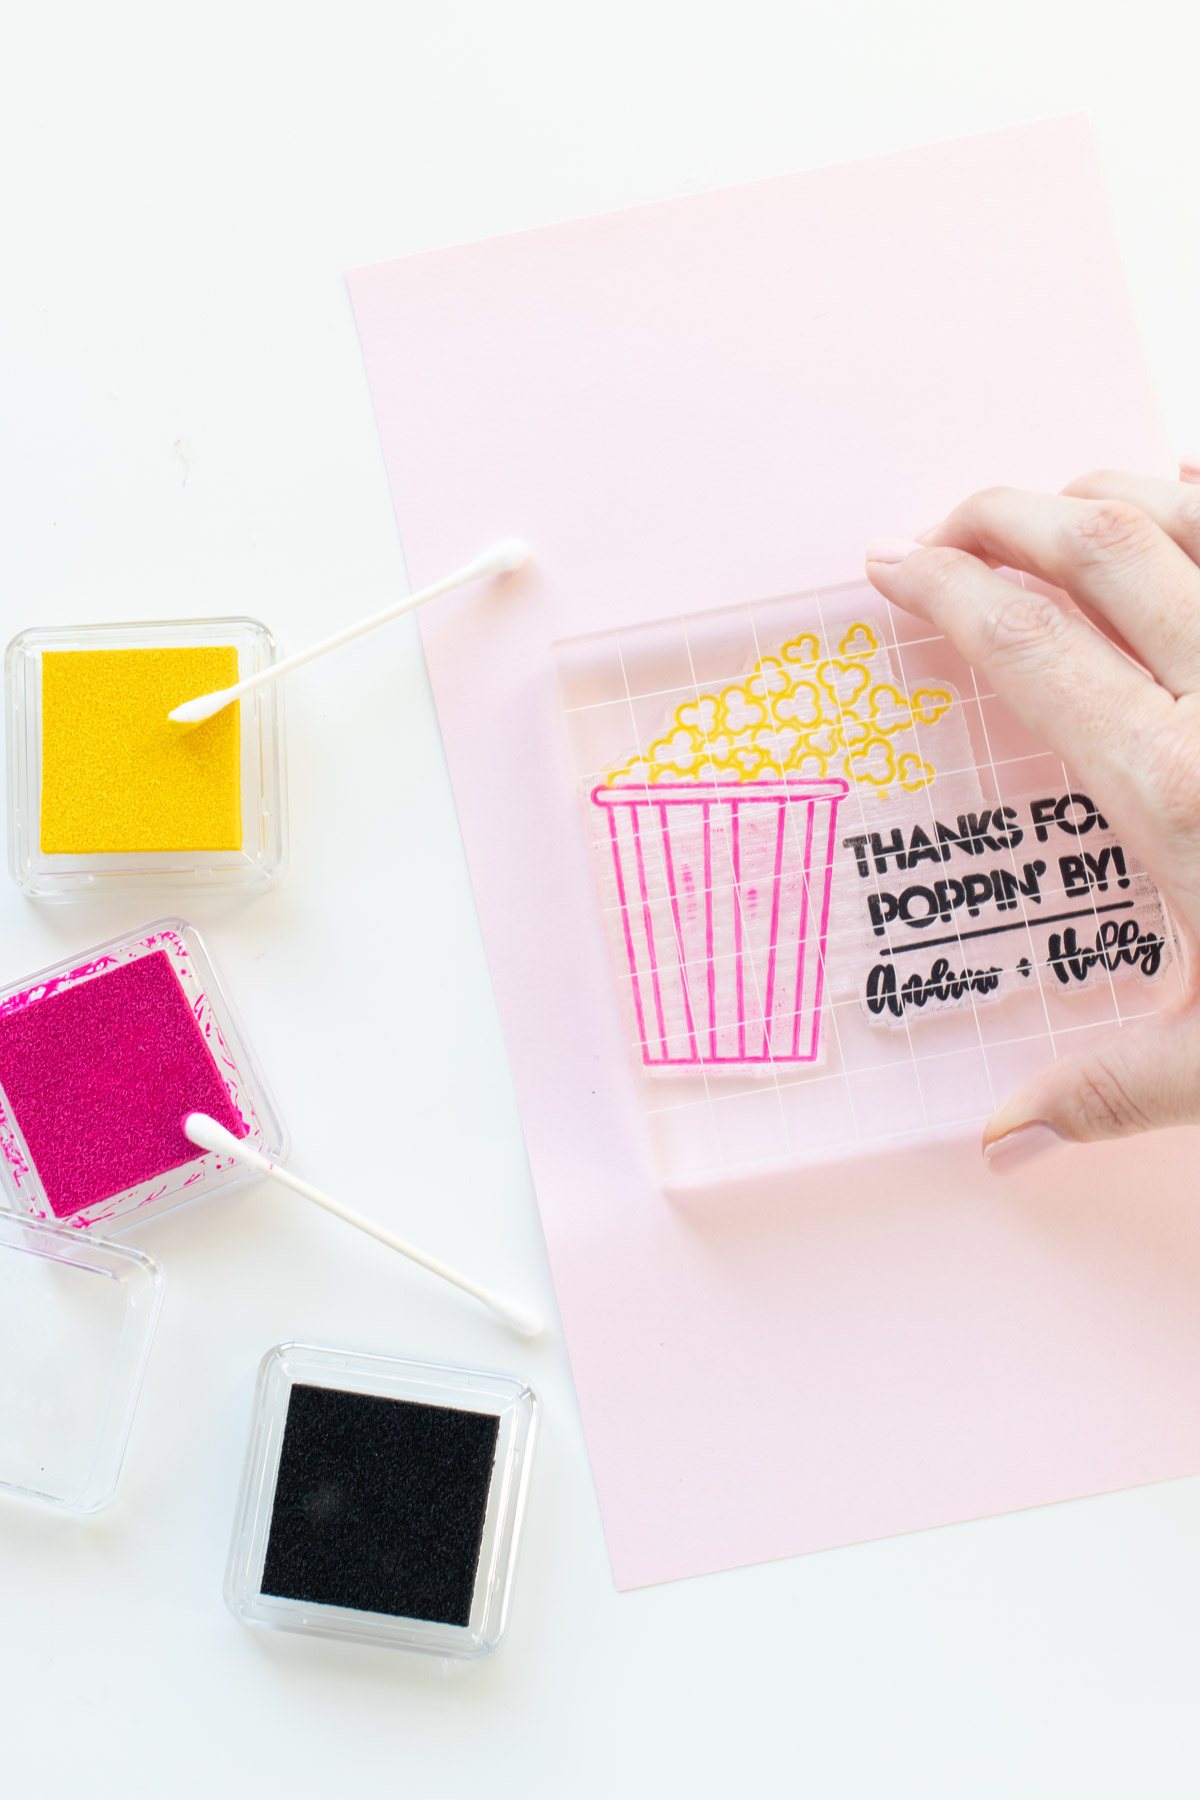 """DIY Stamped Popcorn Favors for Weddings   Make your own DIY wedding favors with microwave popcorn! These cute """"thanks for POPPING by"""" popcorn wedding favors use a custom stamp from RubberStamps.com to make a favor guests can easily enjoy at home! #ad #weddingdiy #weddingfavor #partyfavor #stamping #popcorn #papercrafts #diyparty #handmadewedding #colorfulwedding"""